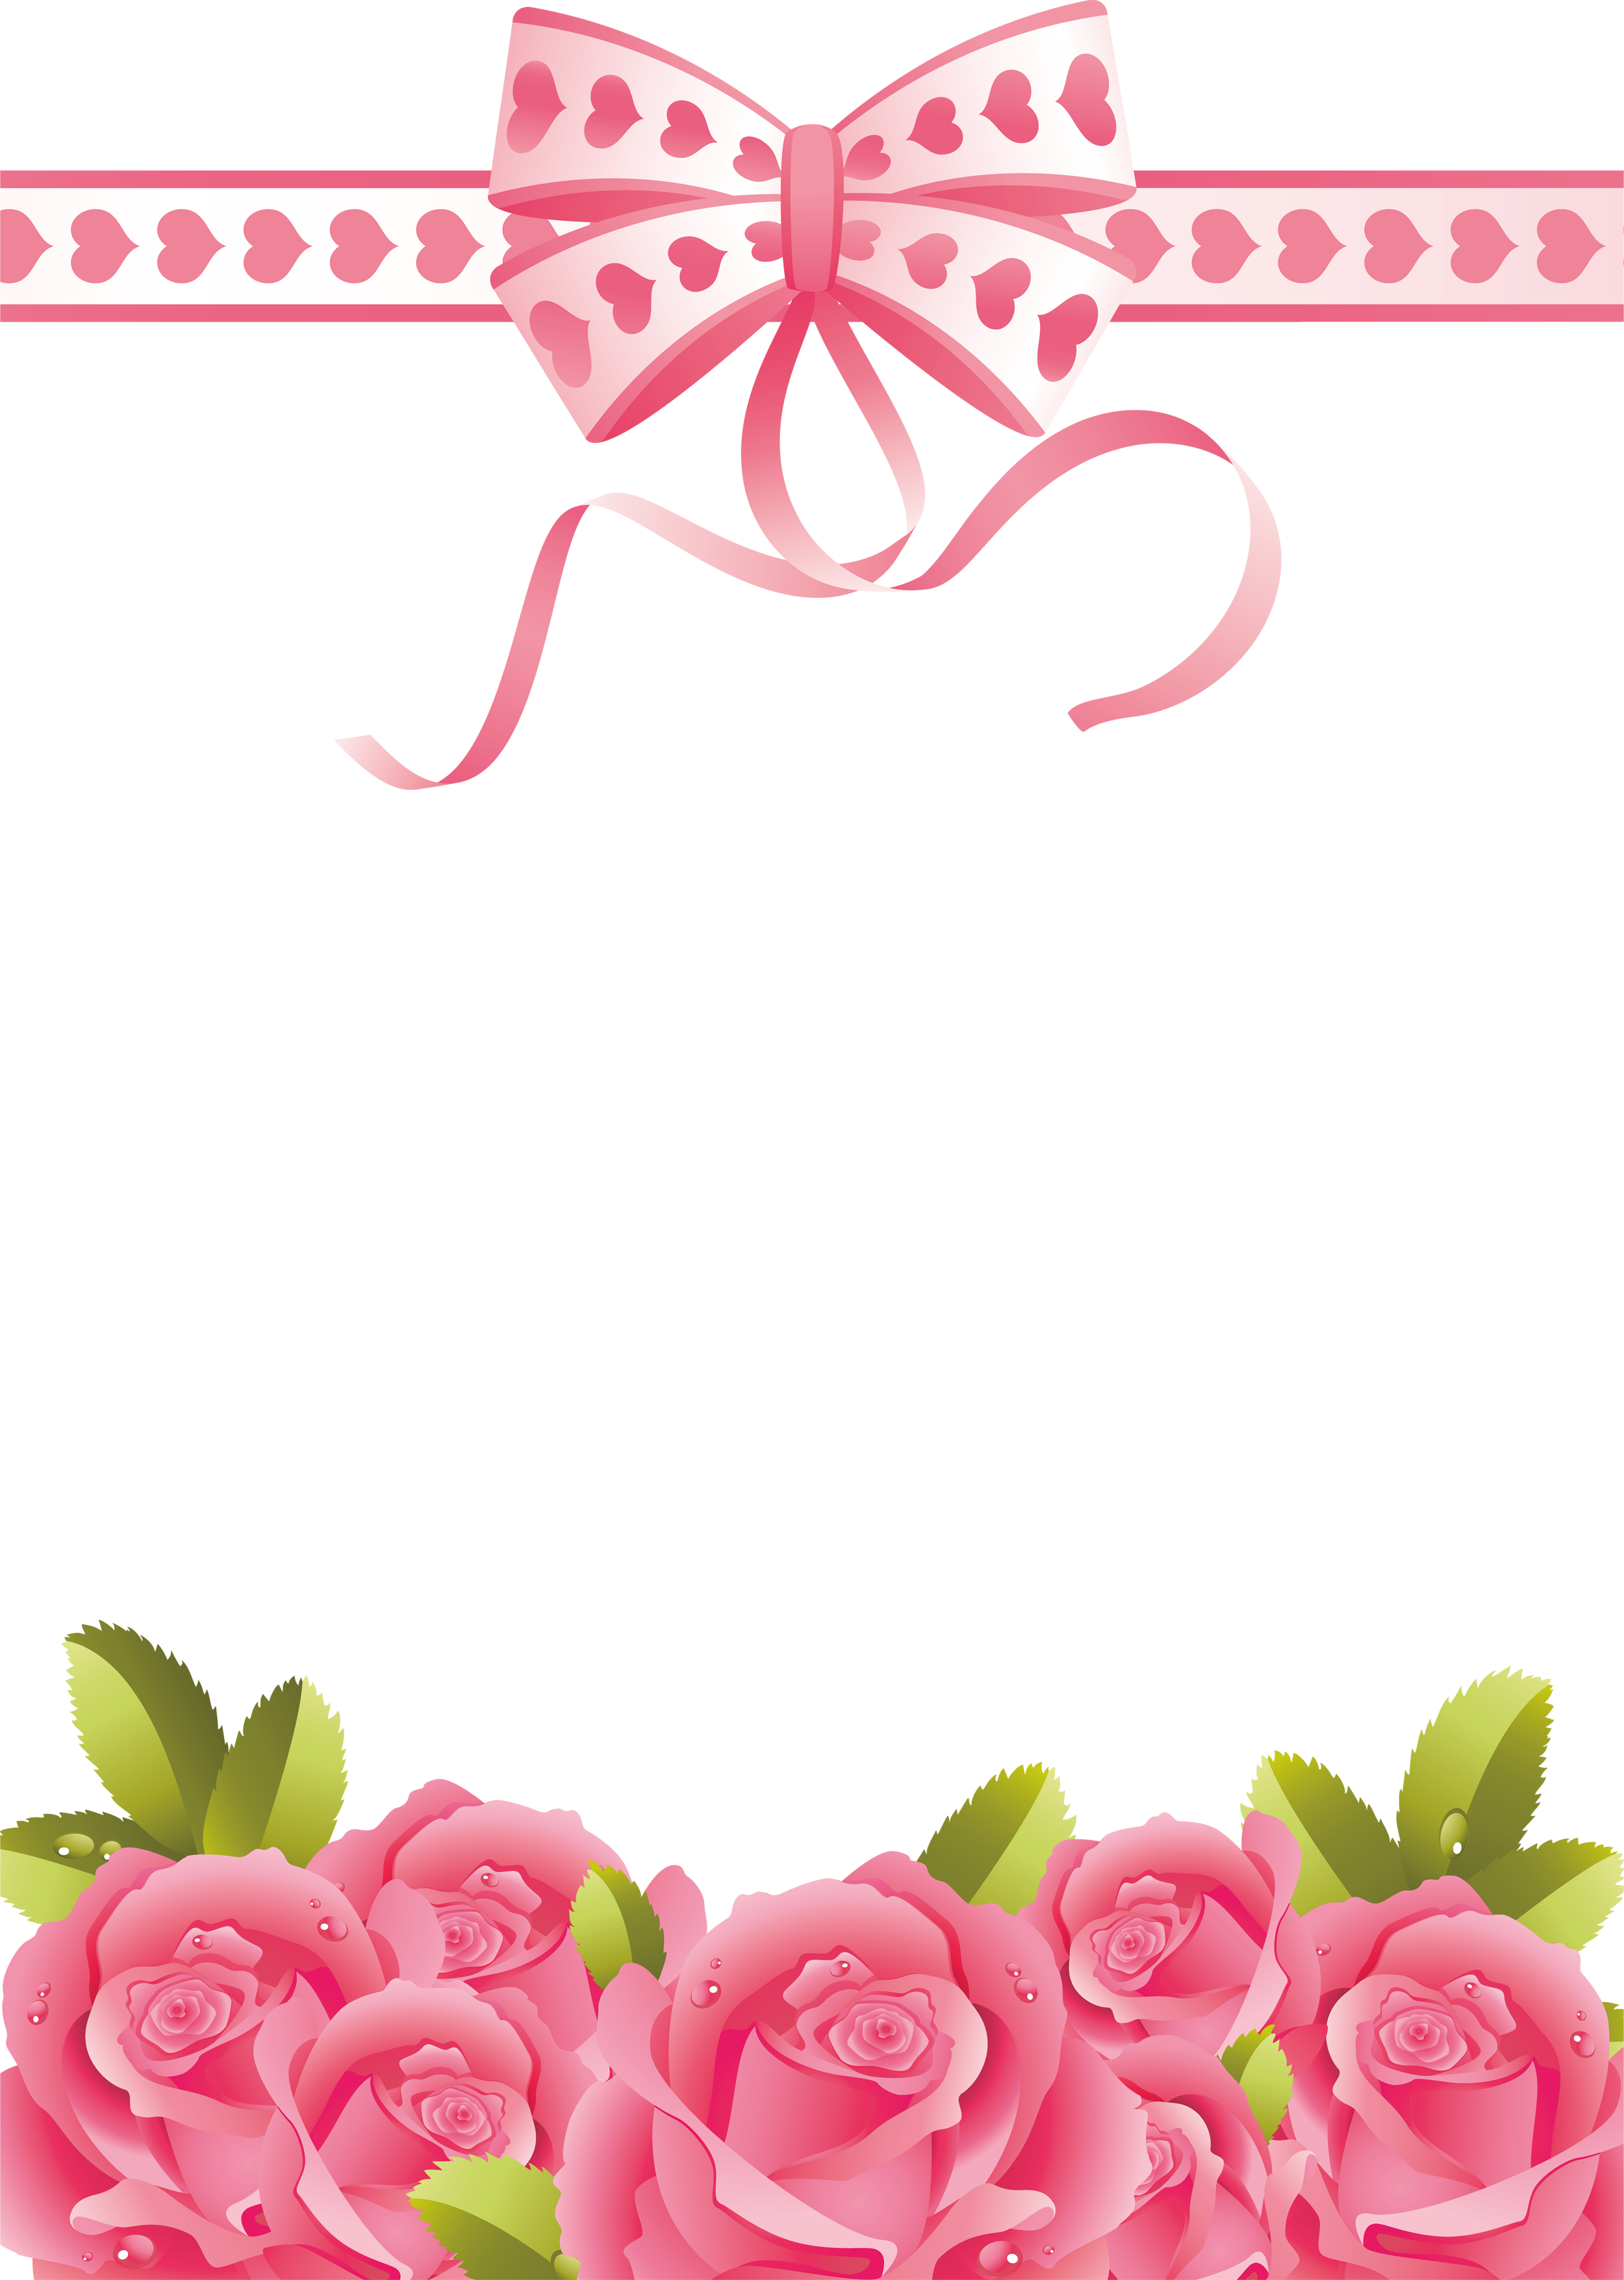 Roses pinterest label tag. Journal clipart pink